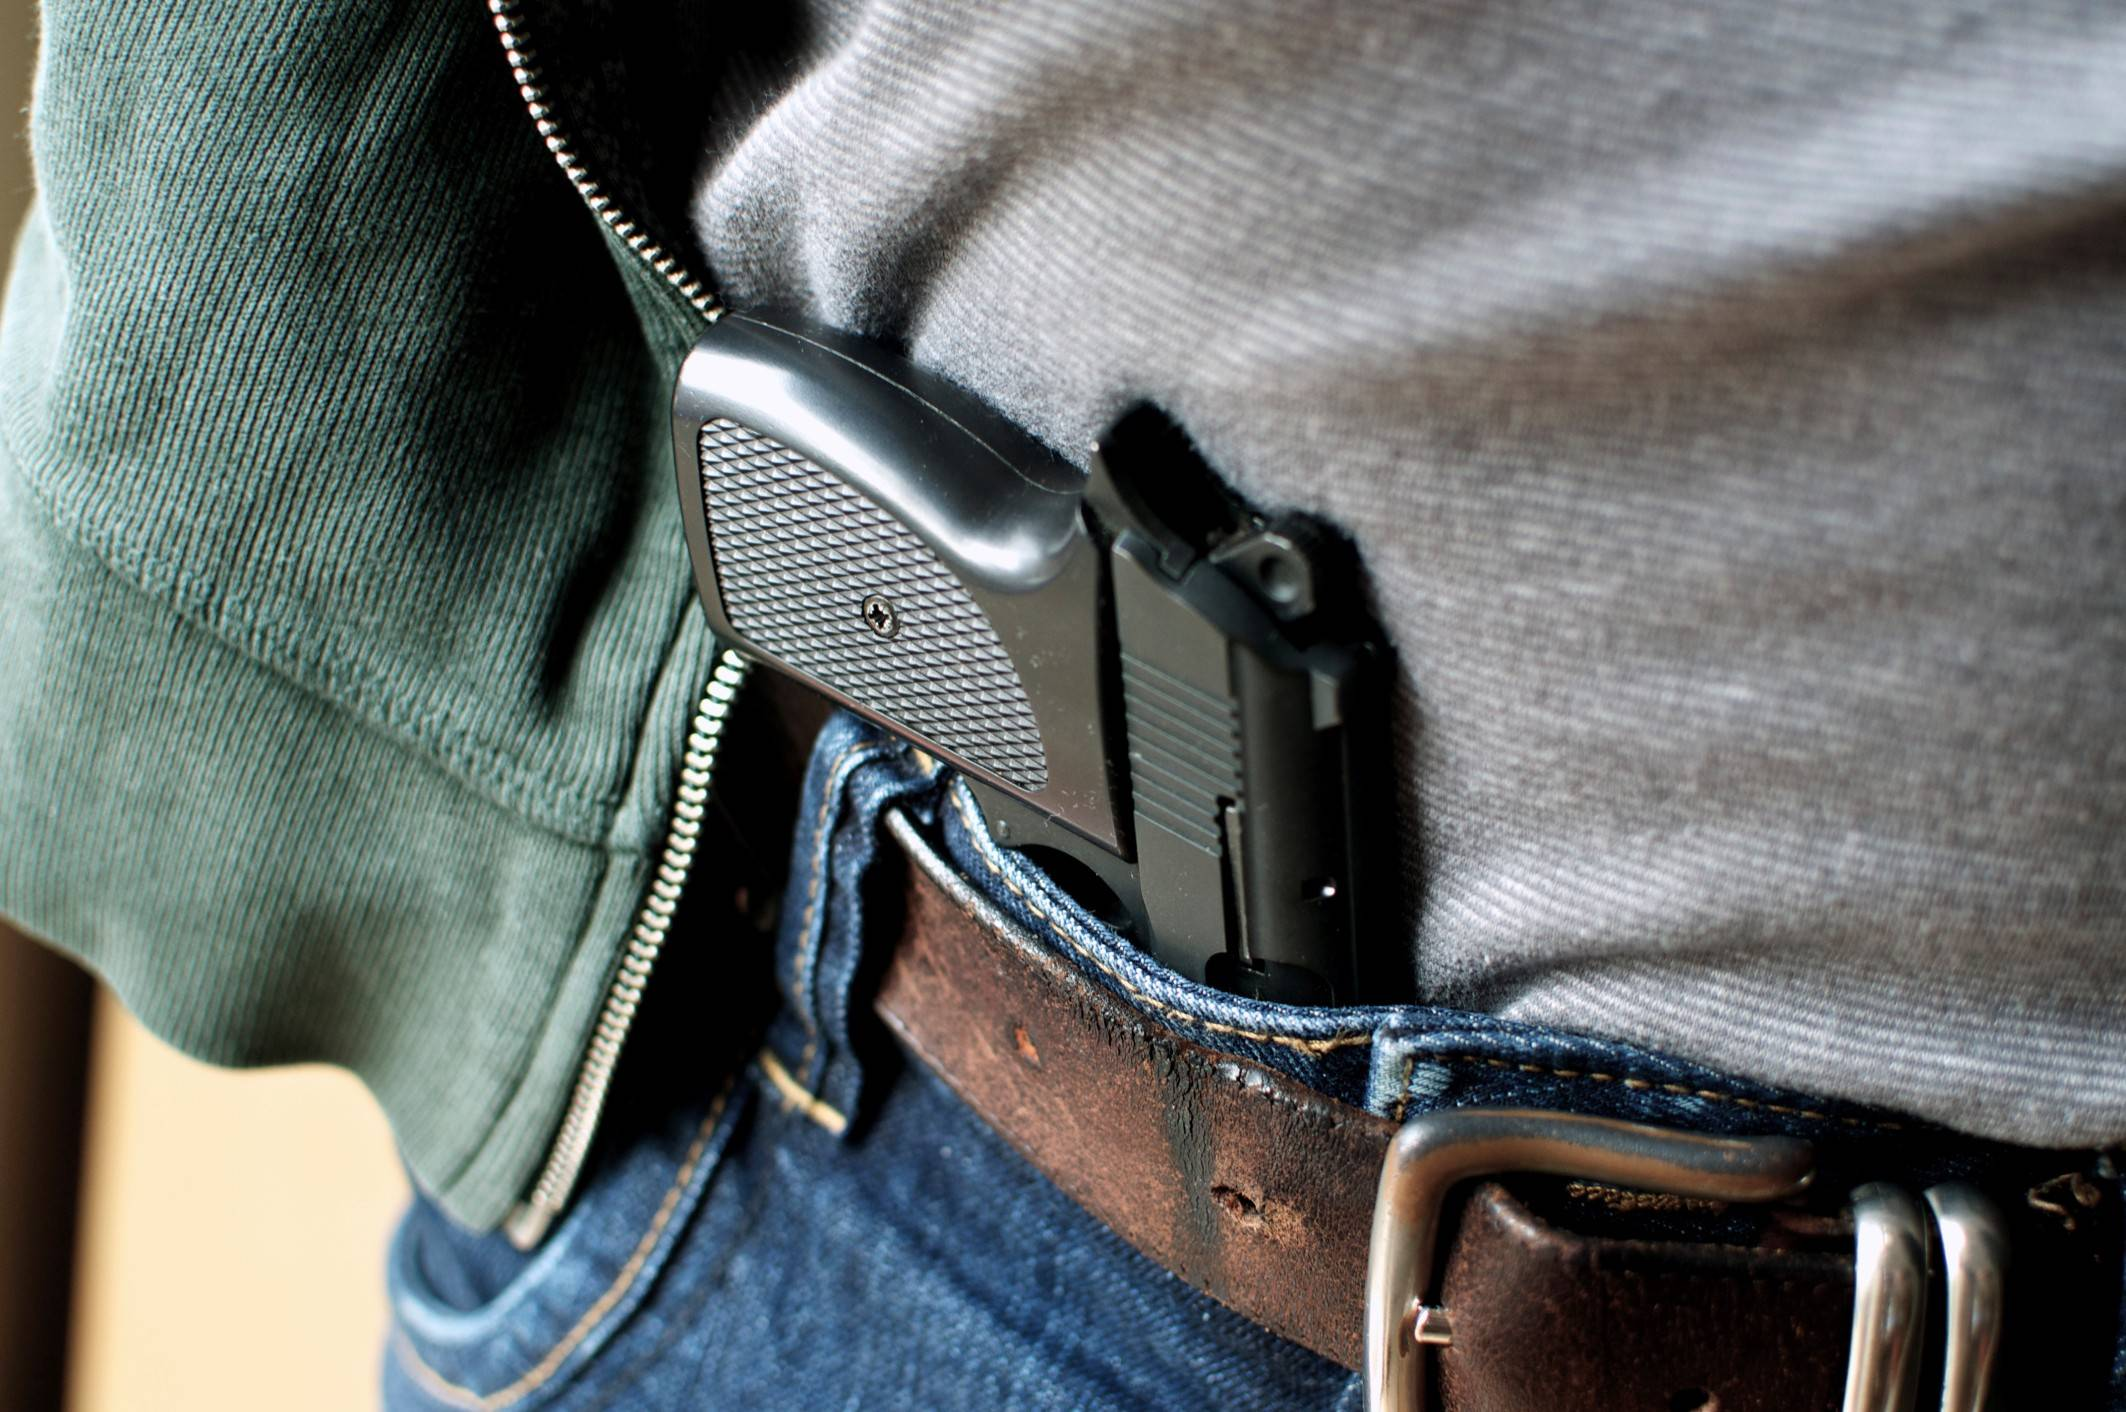 Concealed carry applications fall far short of projections